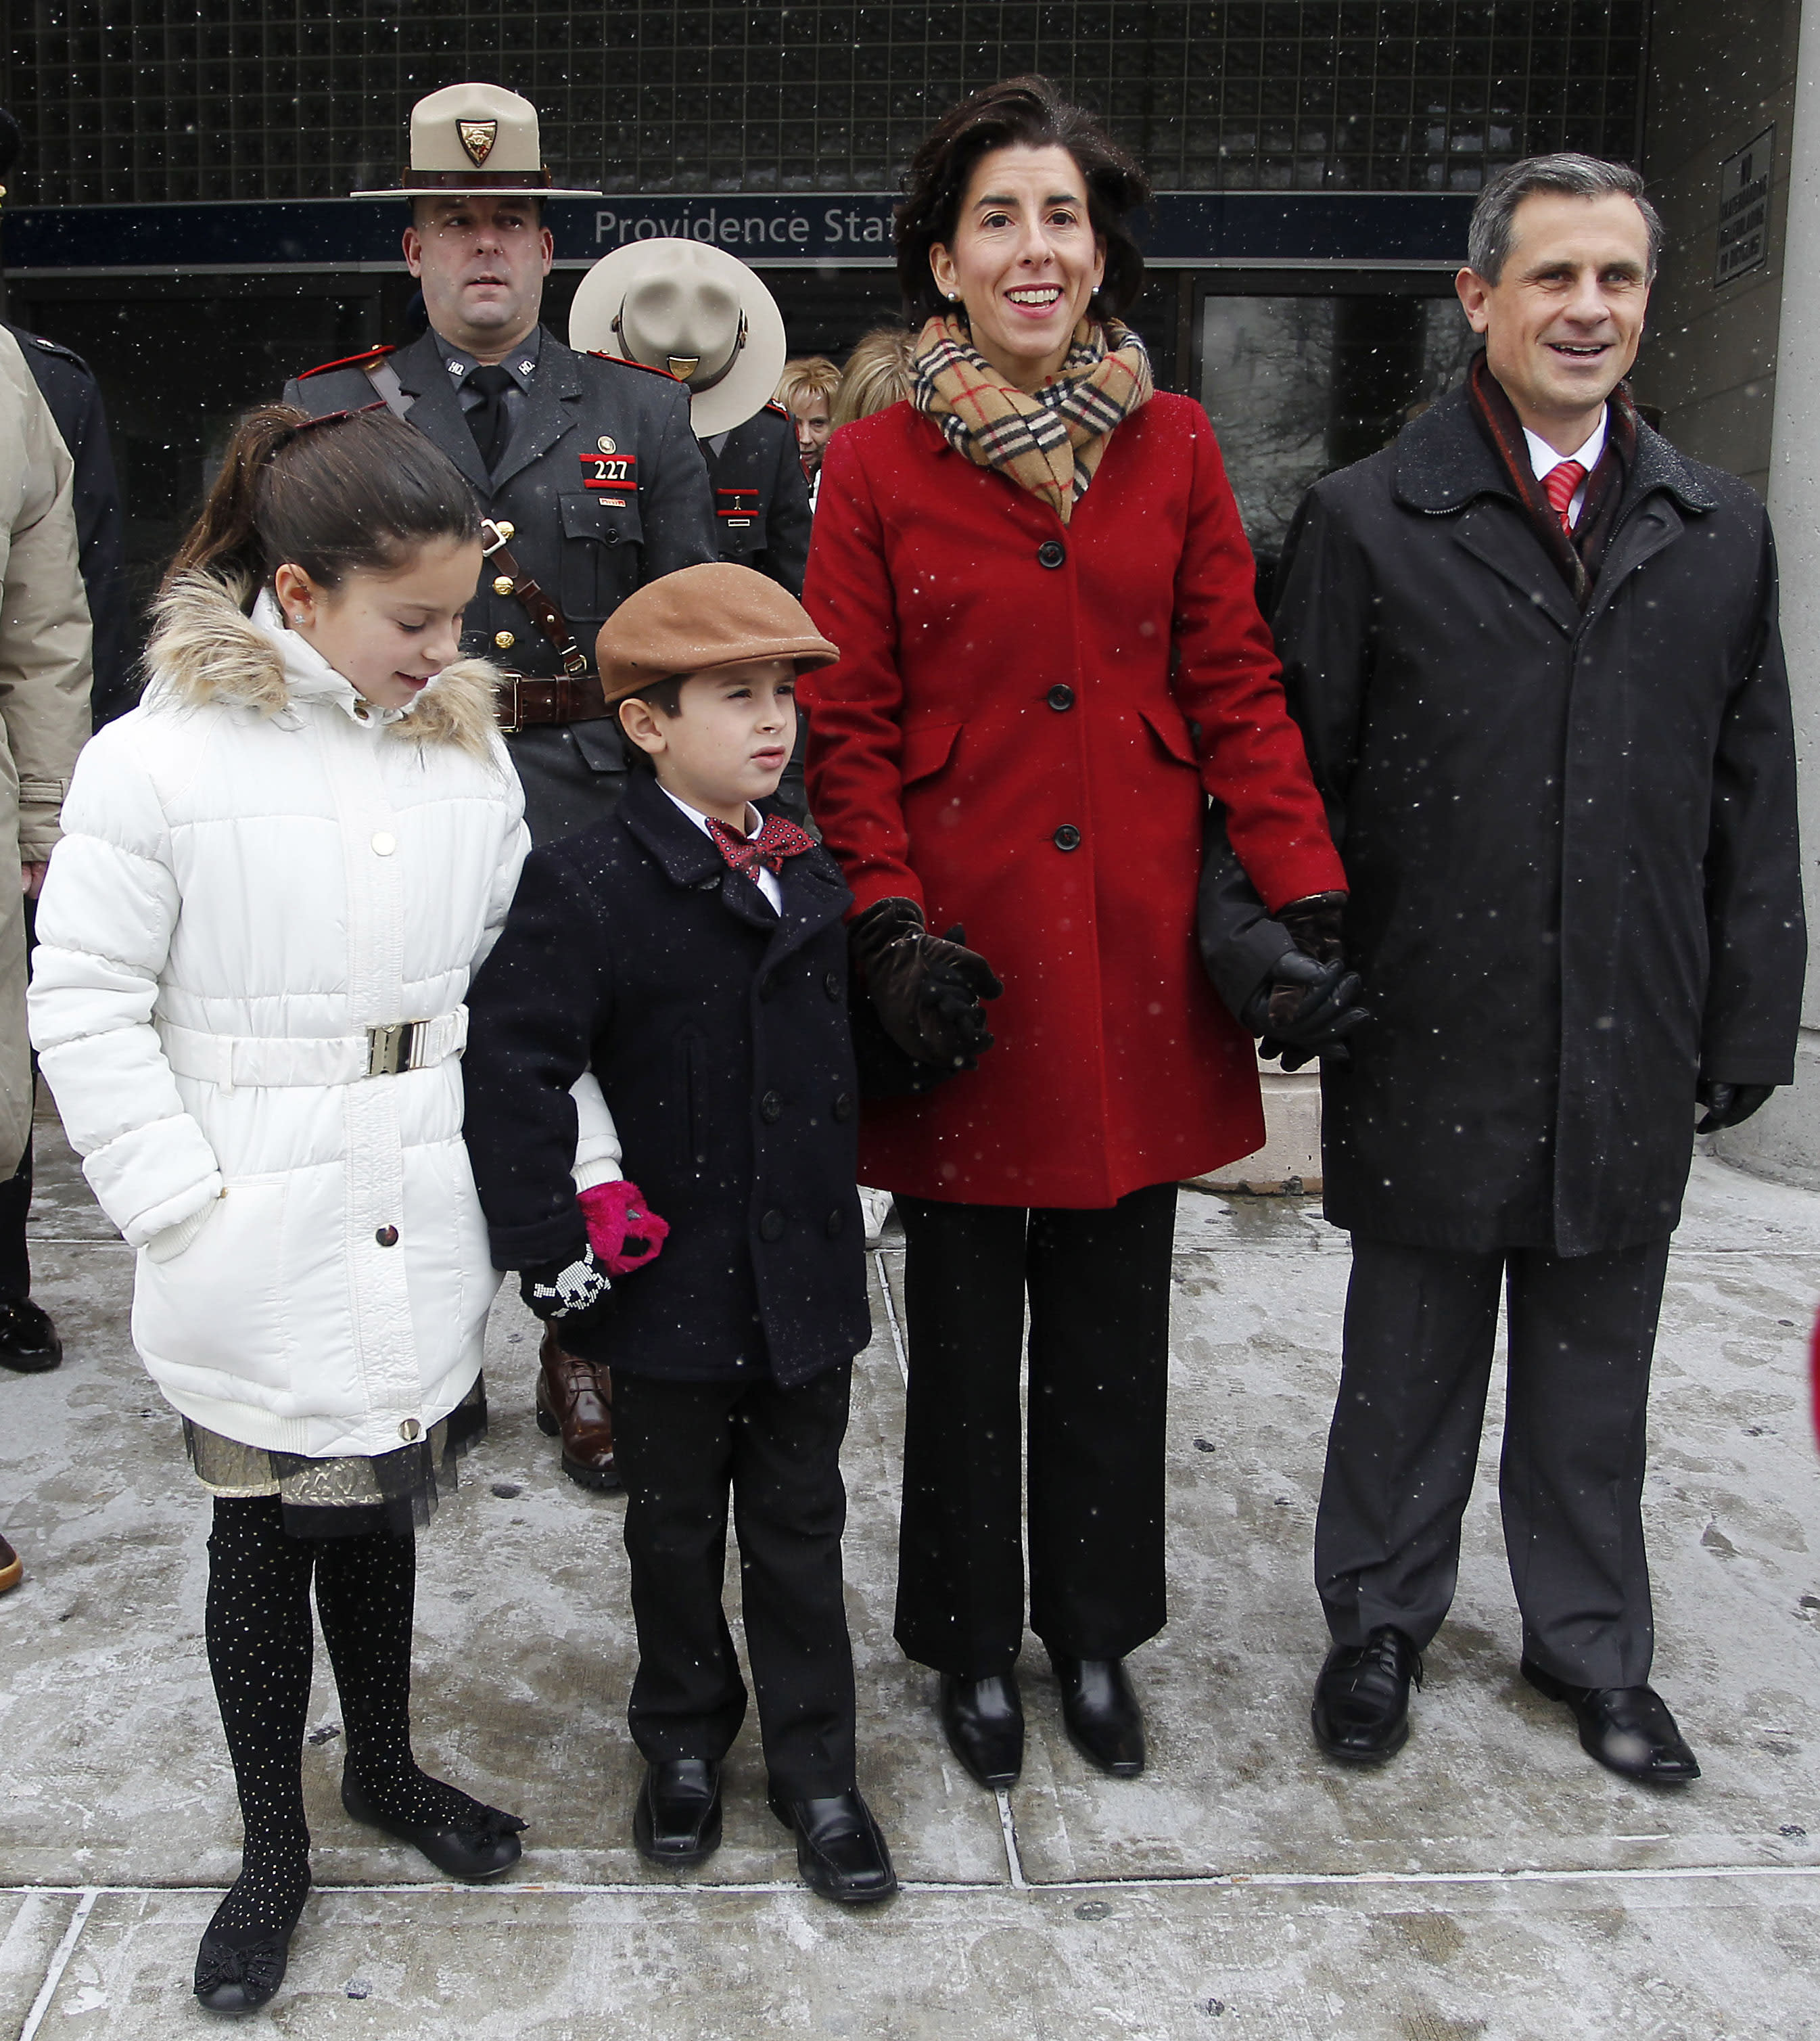 Rhode Island governor puts being a mom at center stage